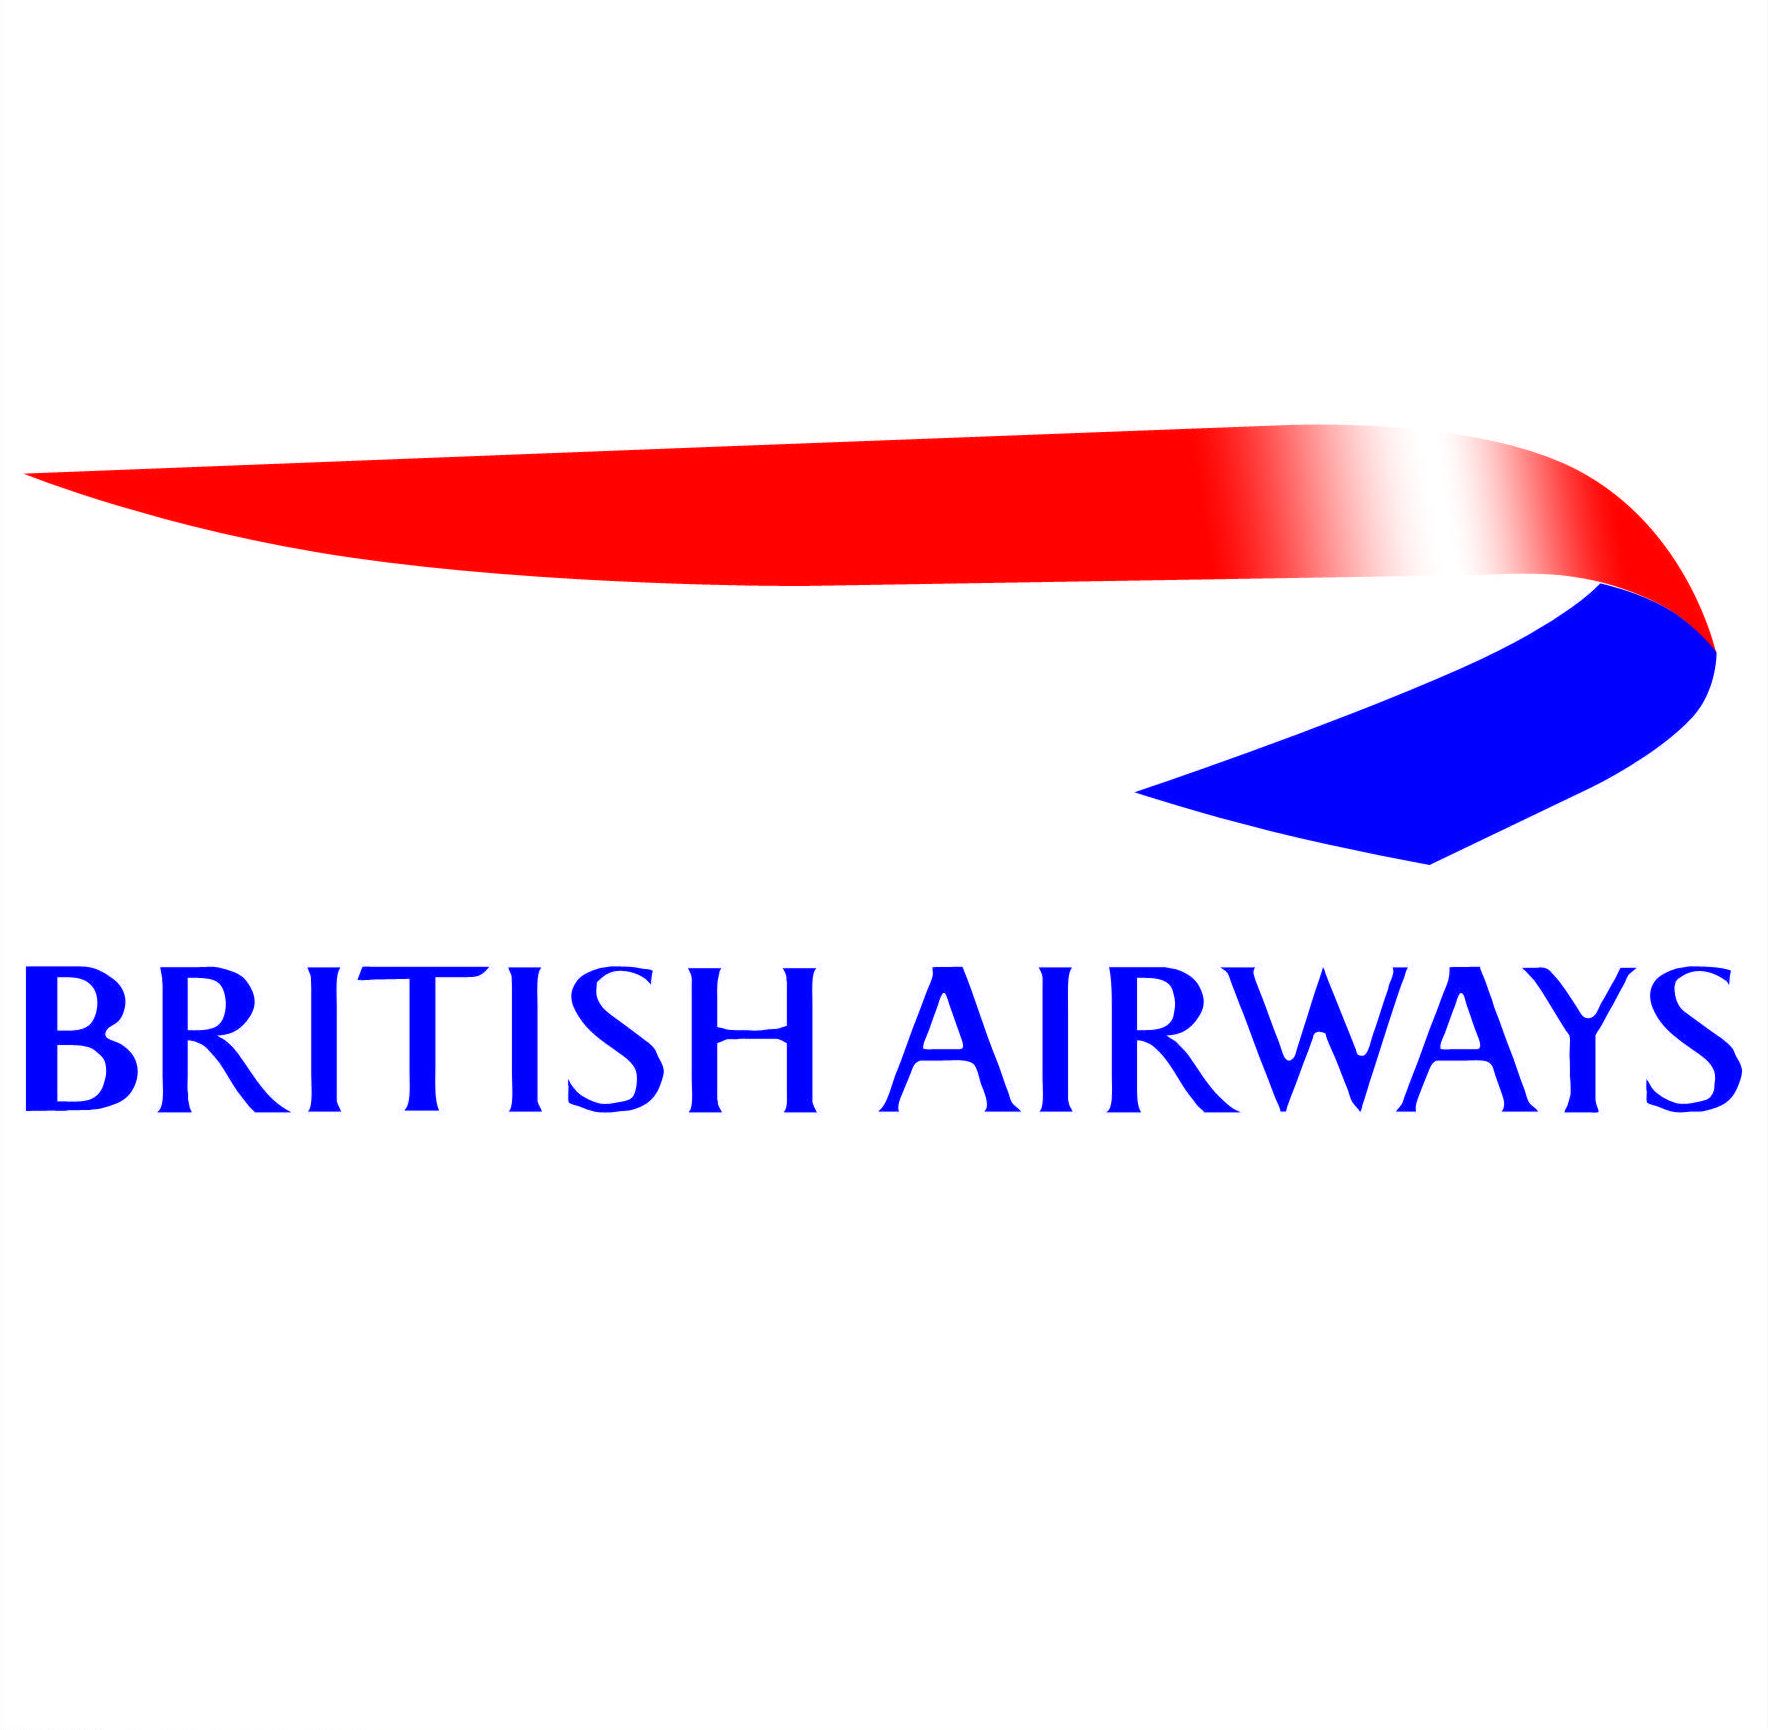 Uk Flag, British Airways, 31 March, United Kingdom, Heathrow Airport,  Corporate Logos, Regional, Aviation, Flags - British Airways Logo PNG